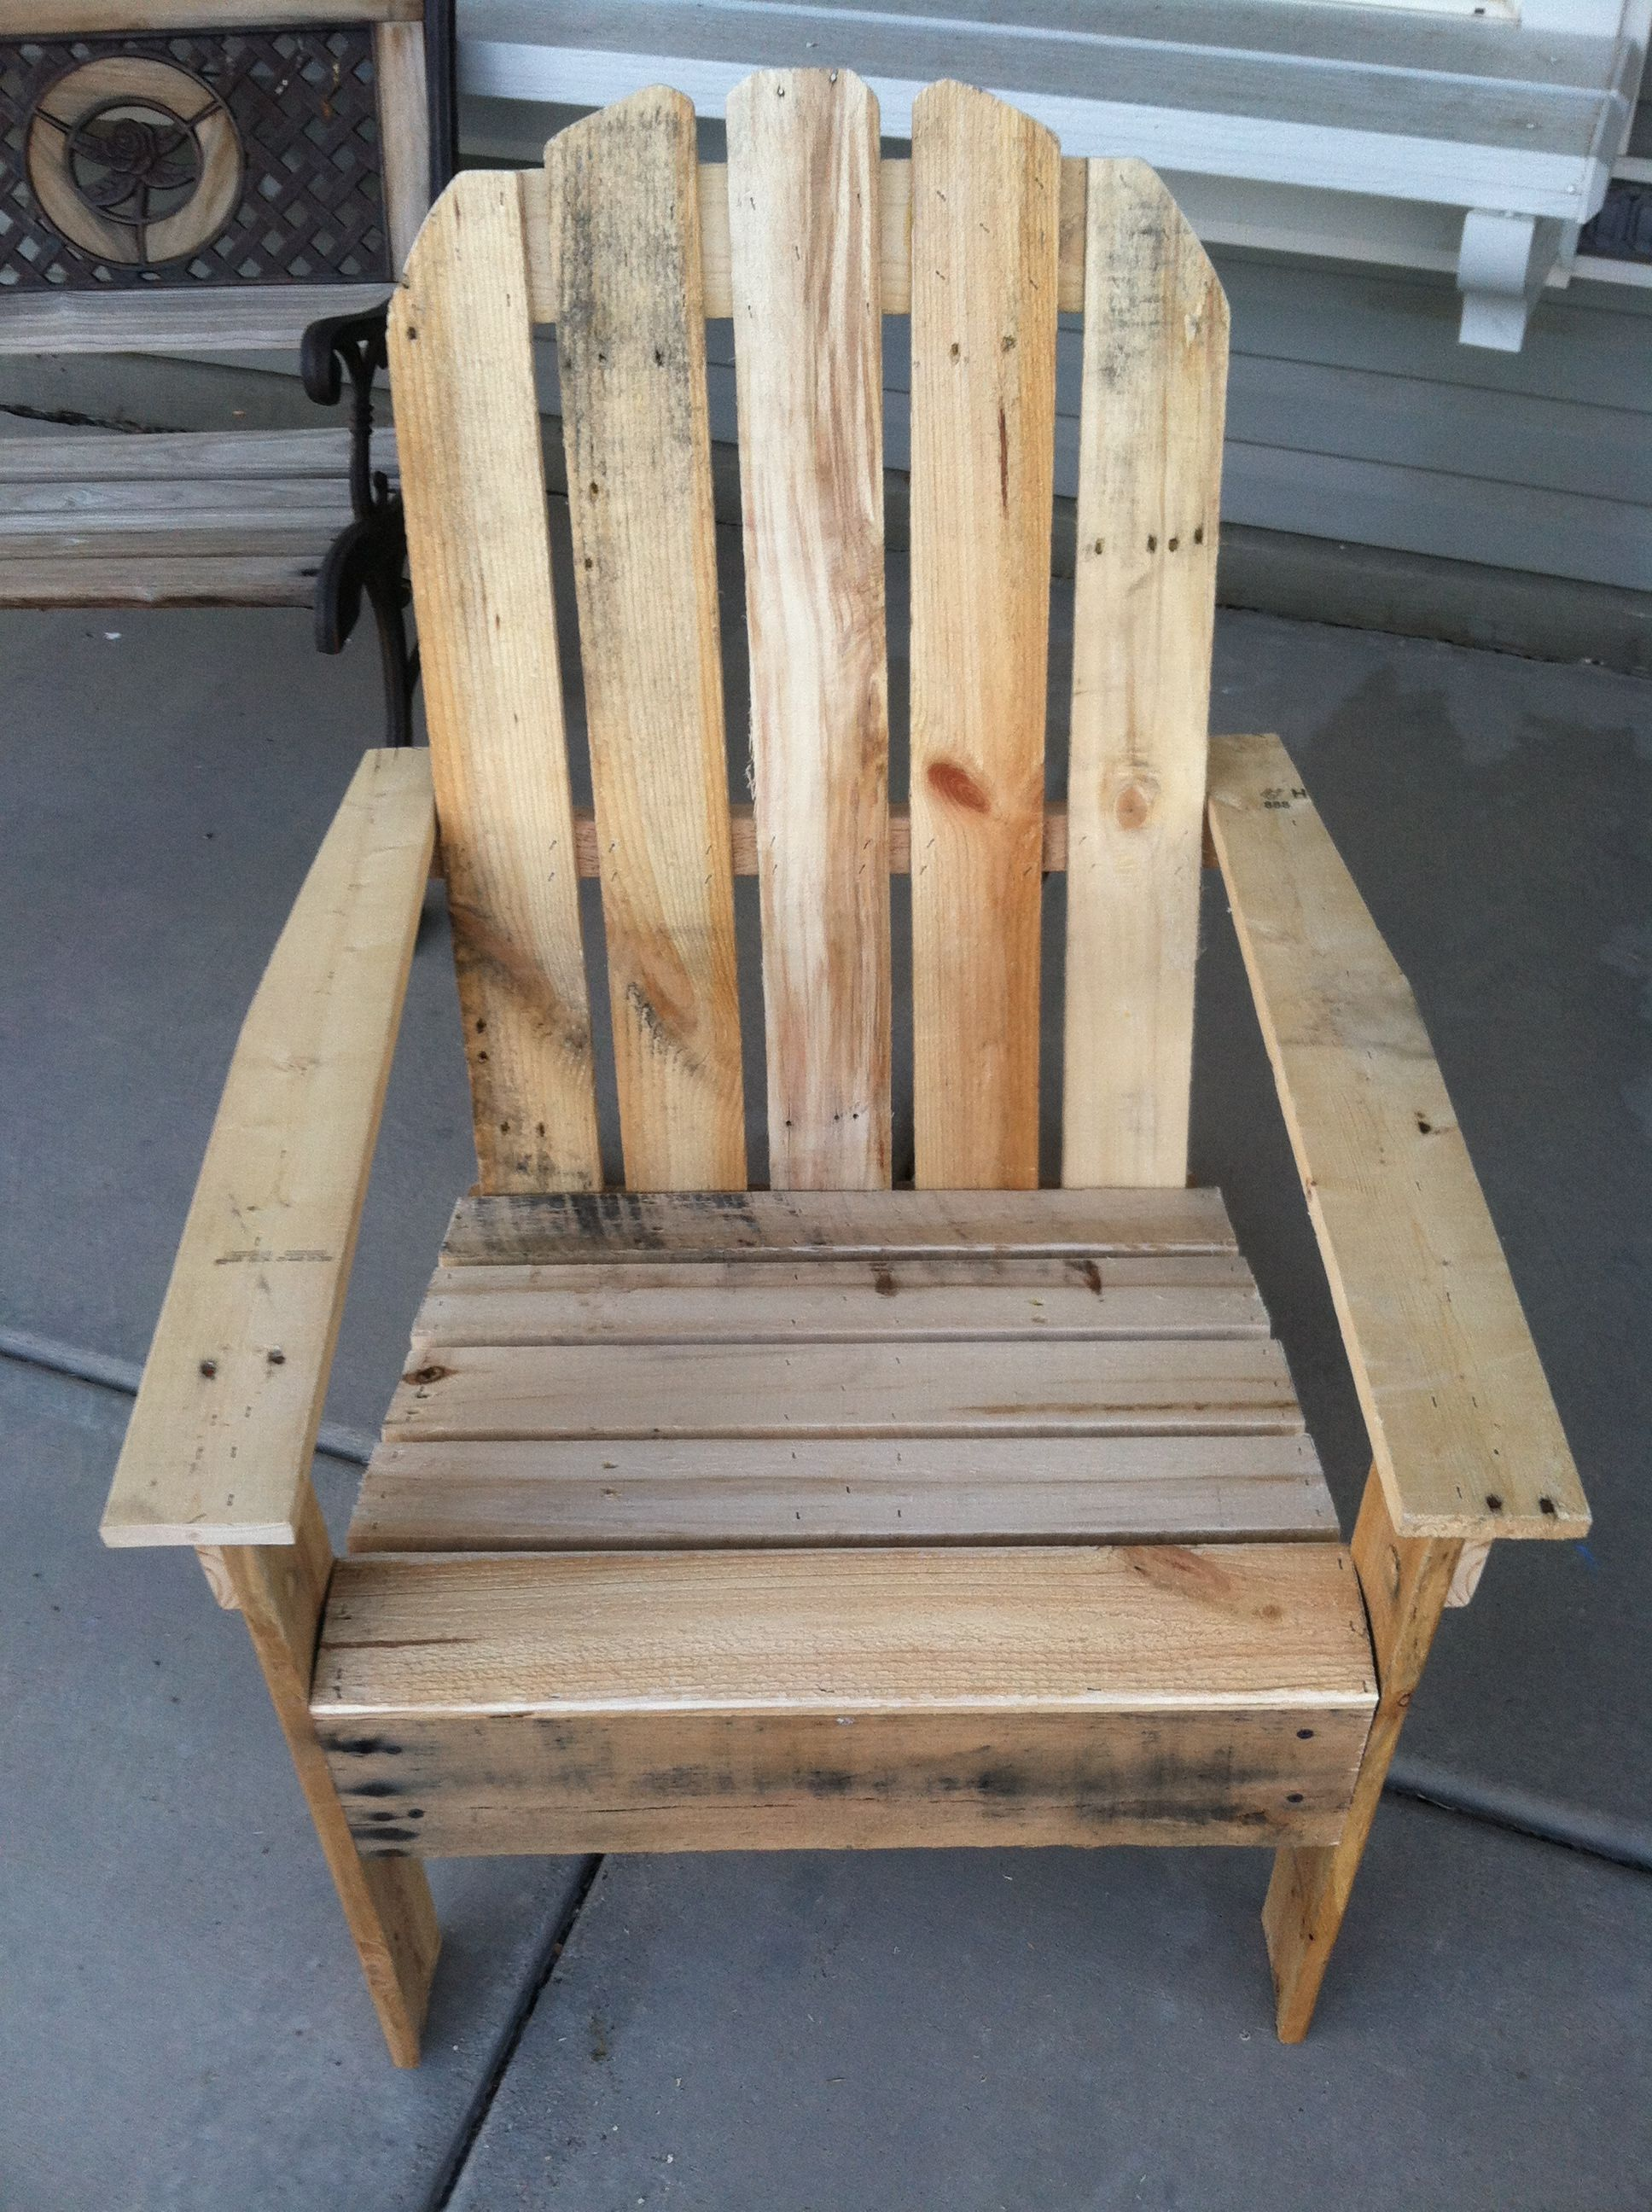 ana-white inspired adirondack chair completely made from upcycled ...